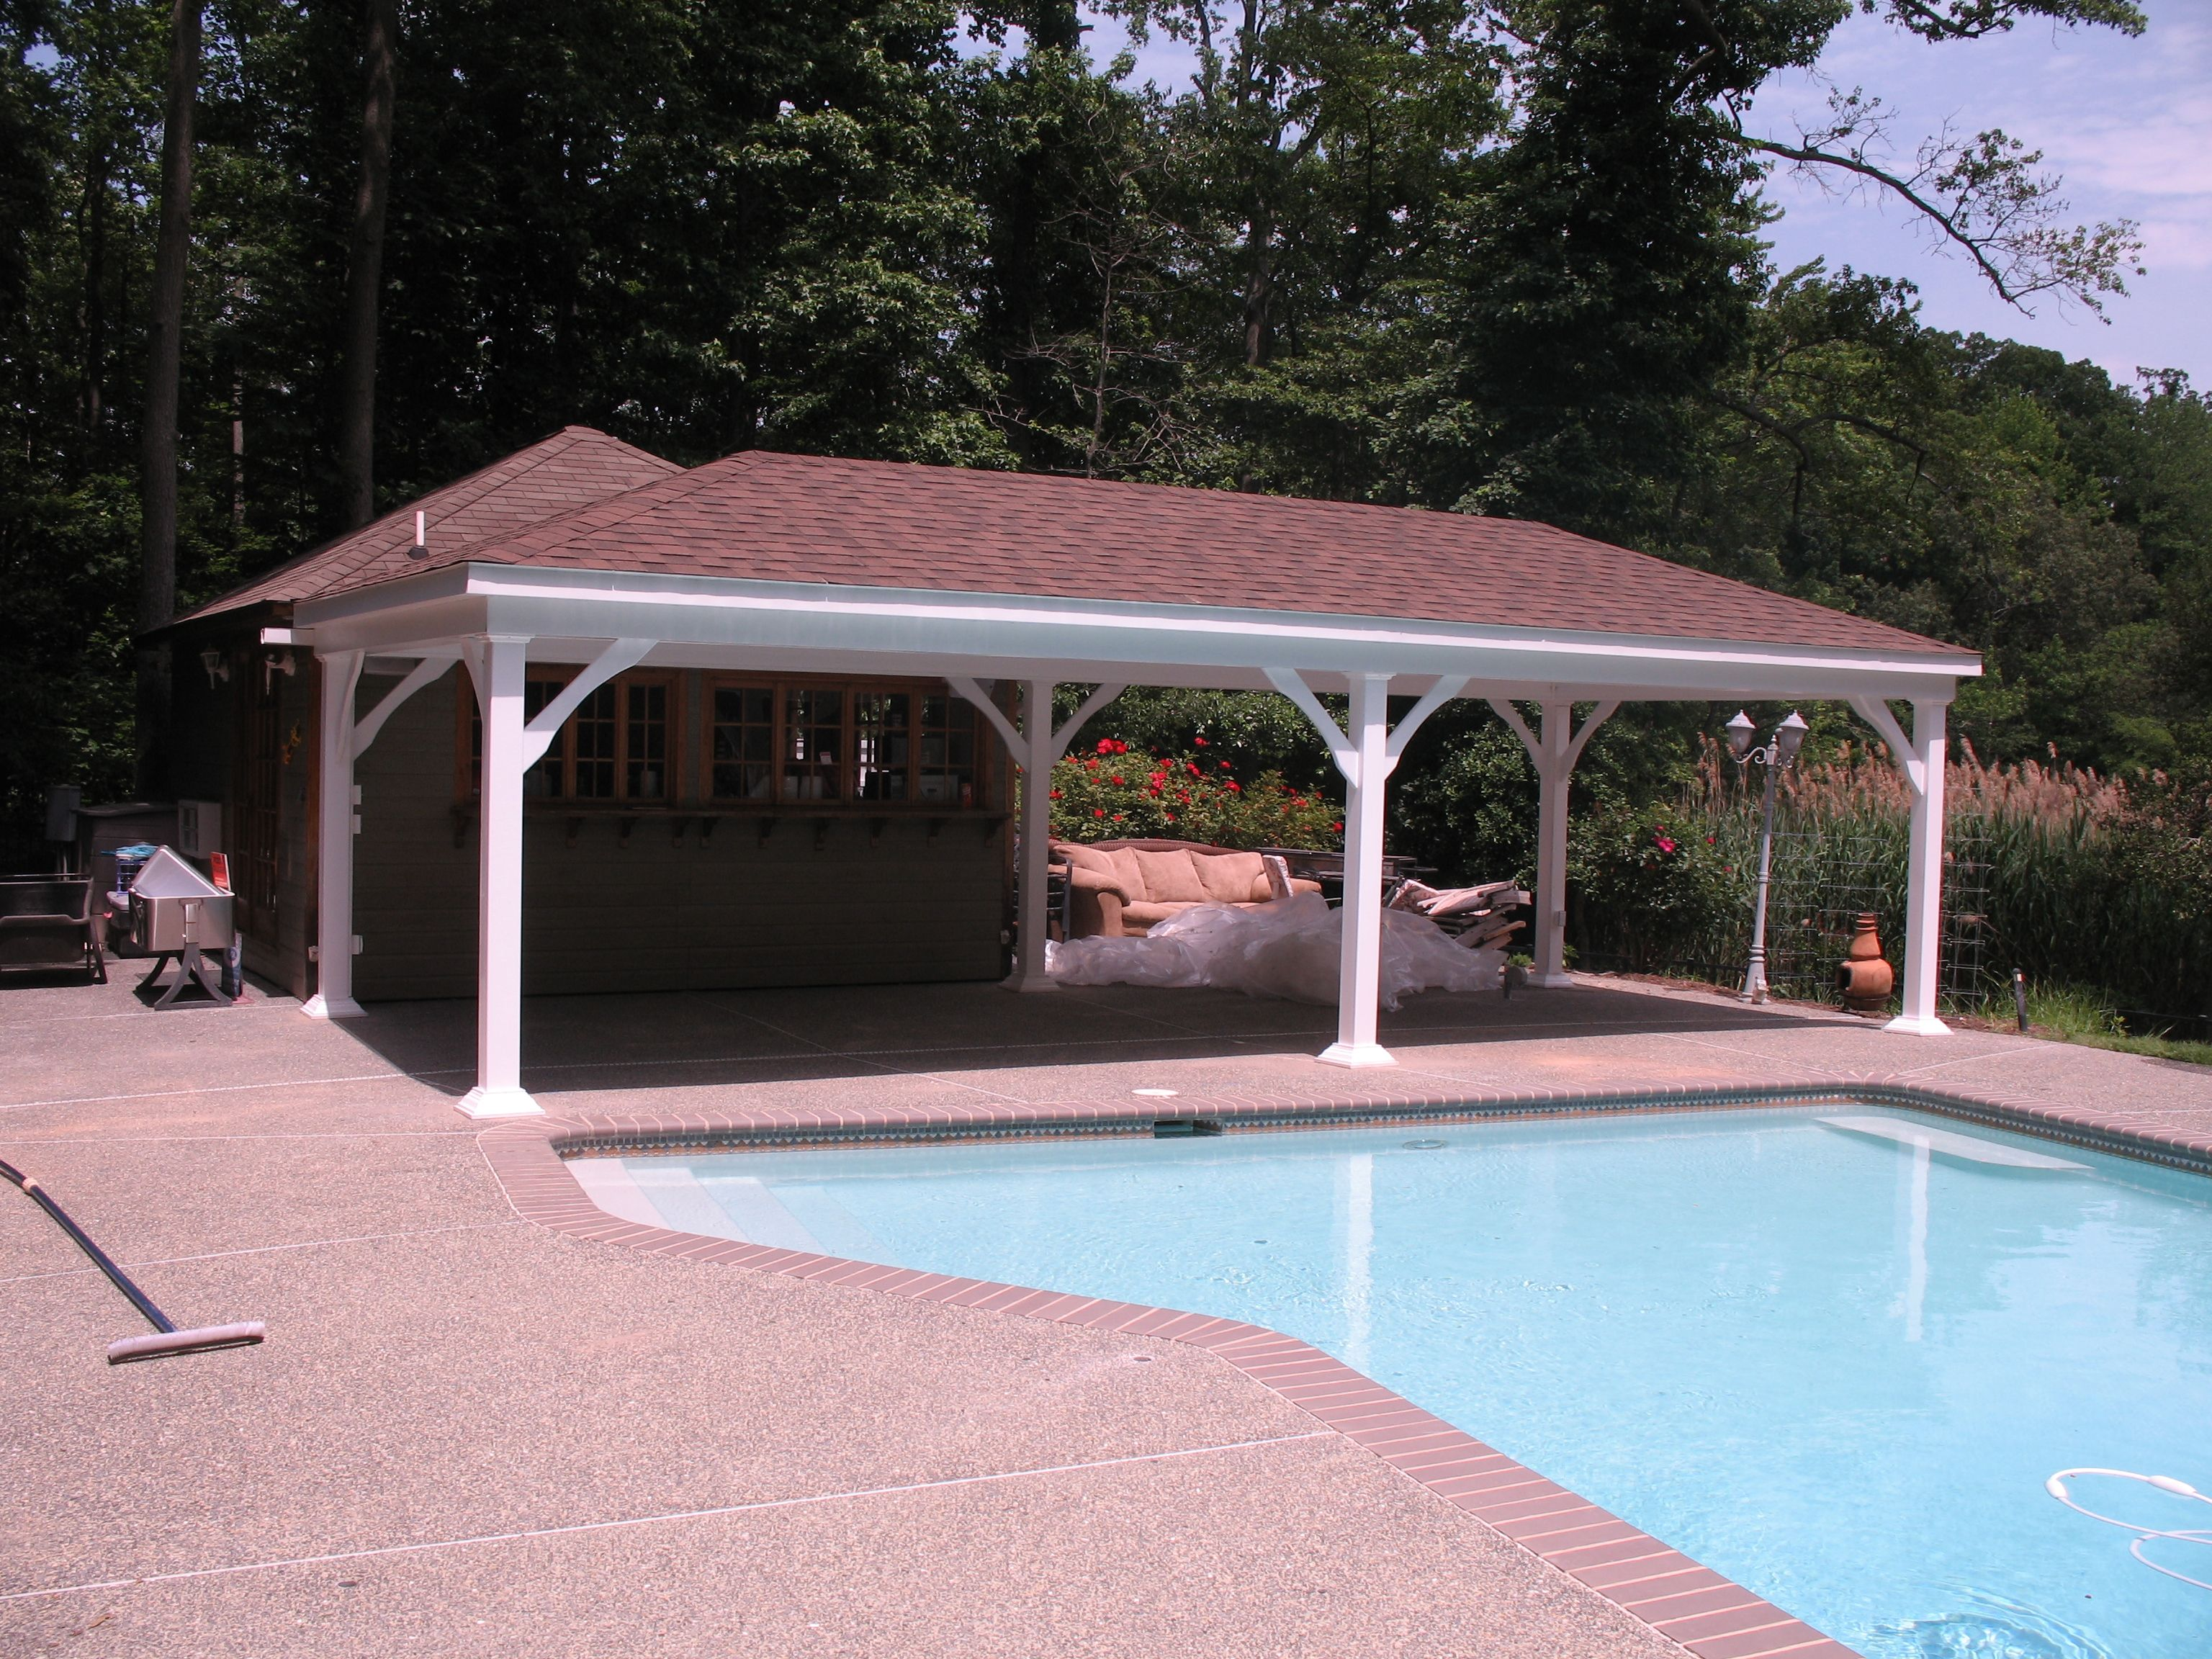 14' x 24' Estate poolside pavilion at homesteadstructures ... on Backyard Discovery Pavilion id=99155